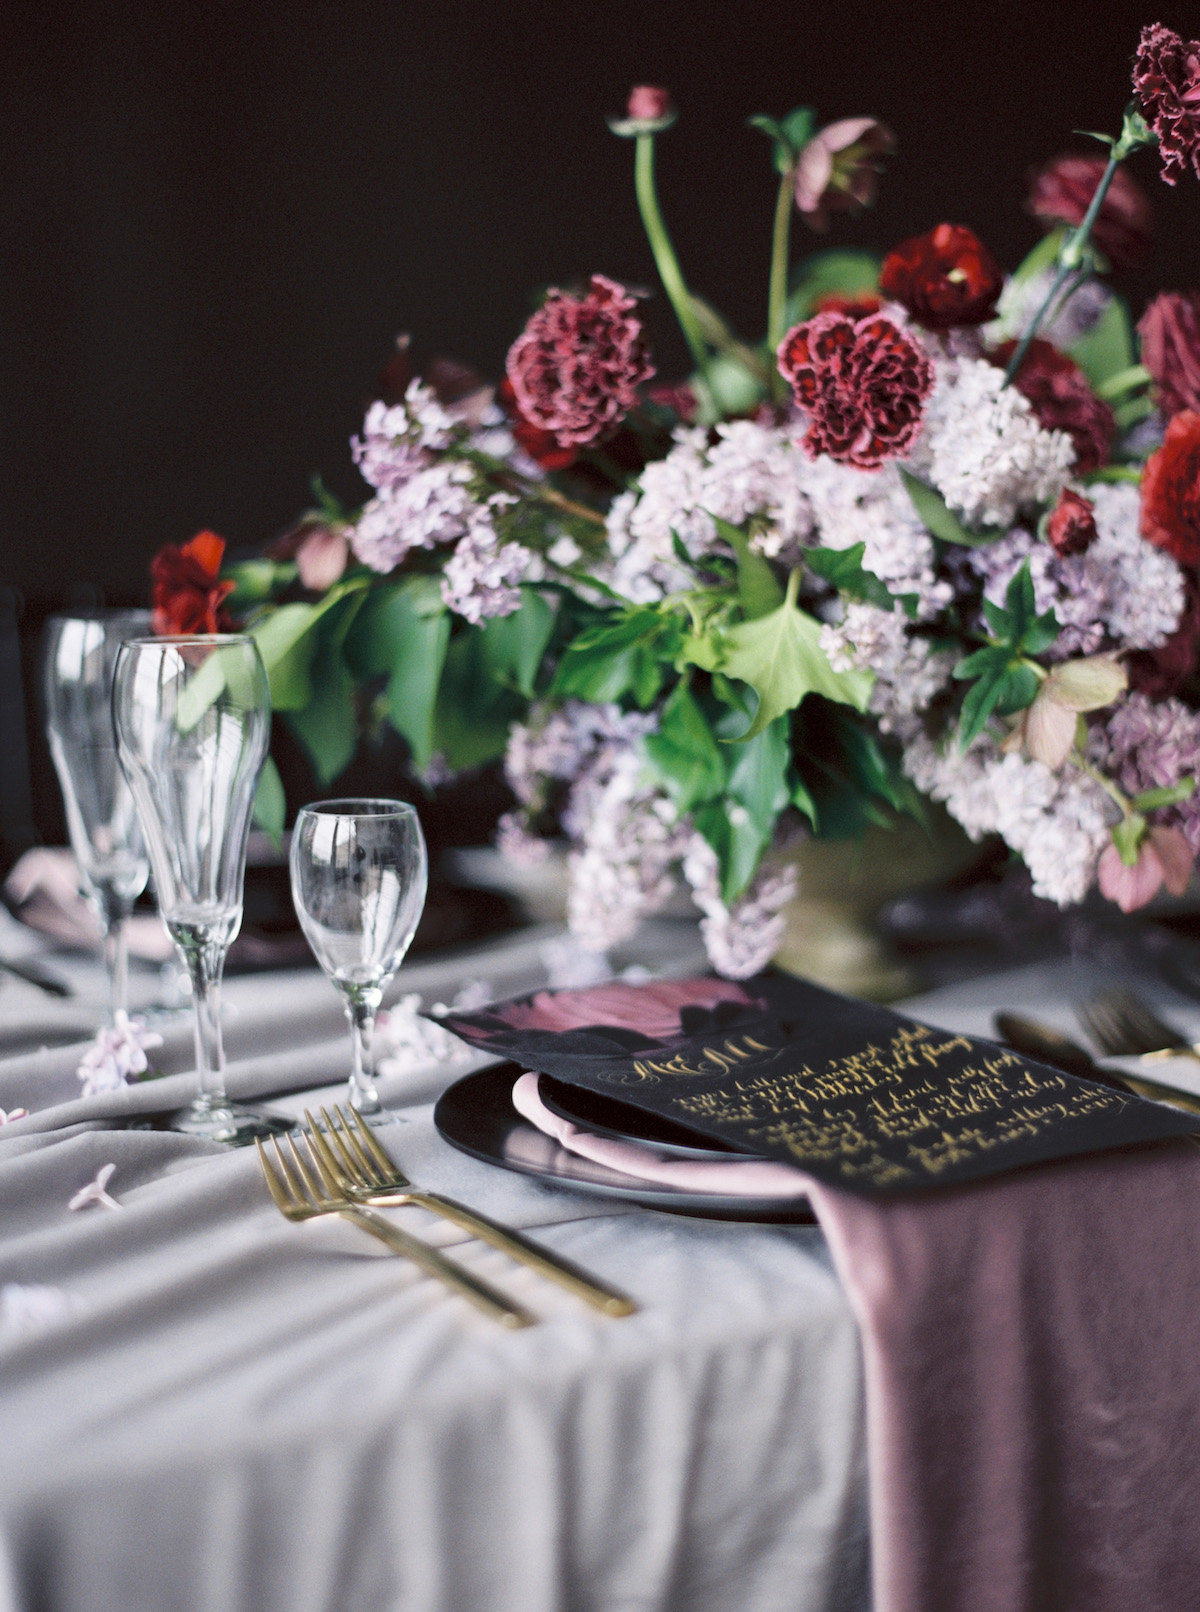 Striking moody table setting idea with black and rich red tones